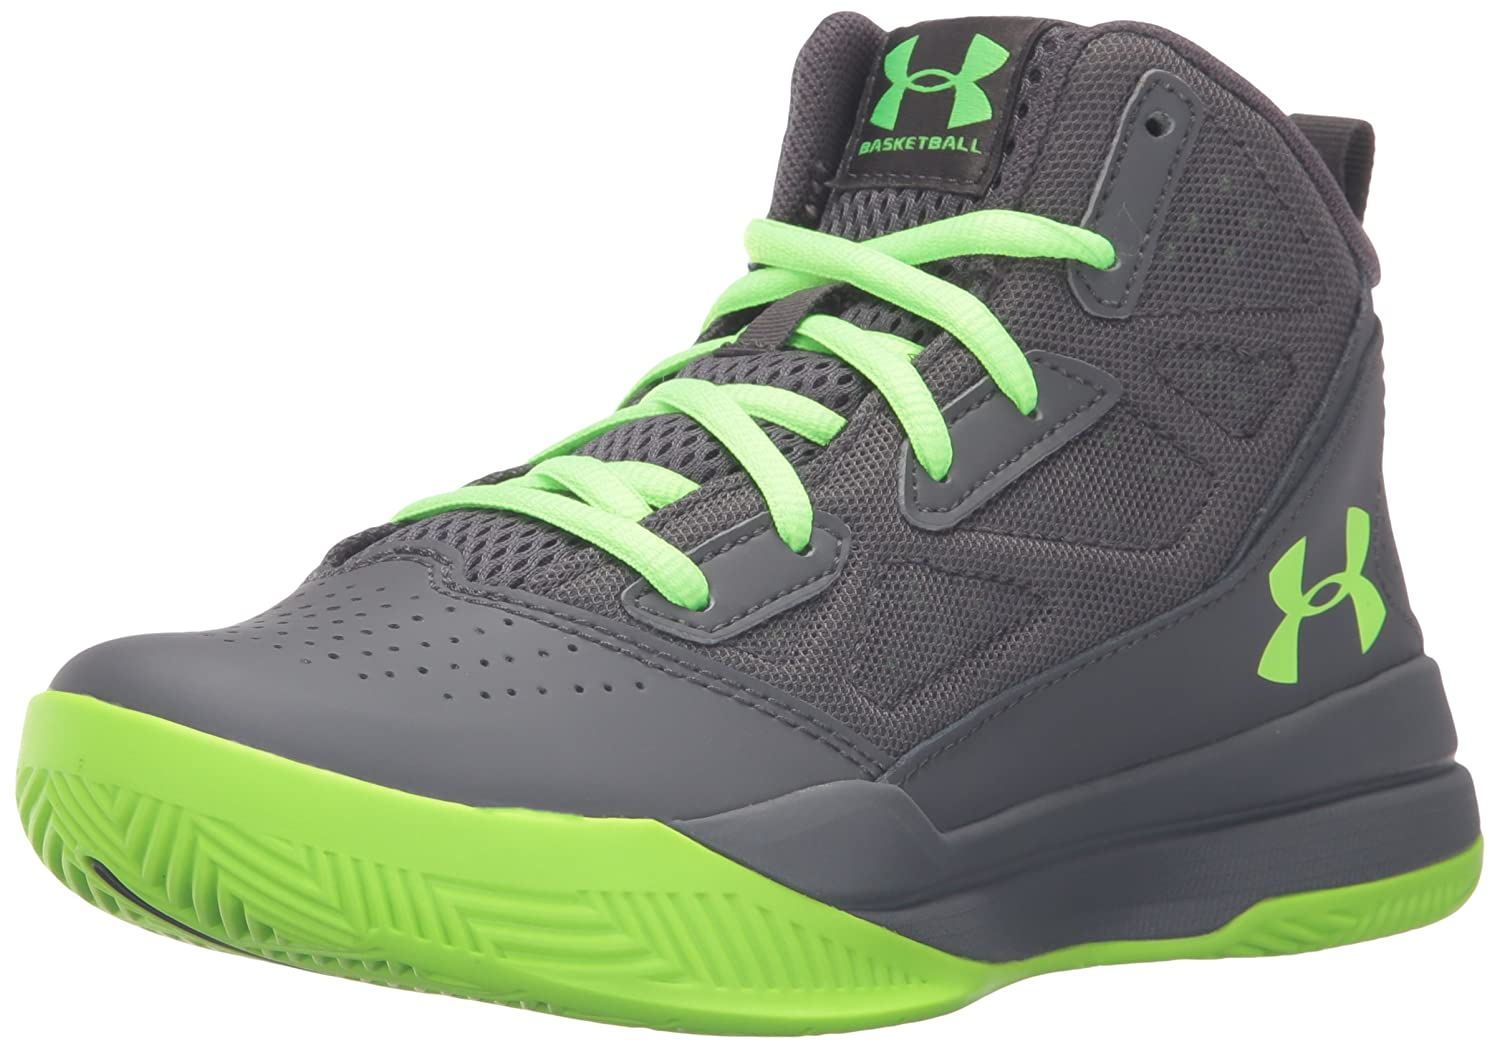 Under Armour Kids' Boys' Grade School Jet Mid Basketball Shoe 1274067